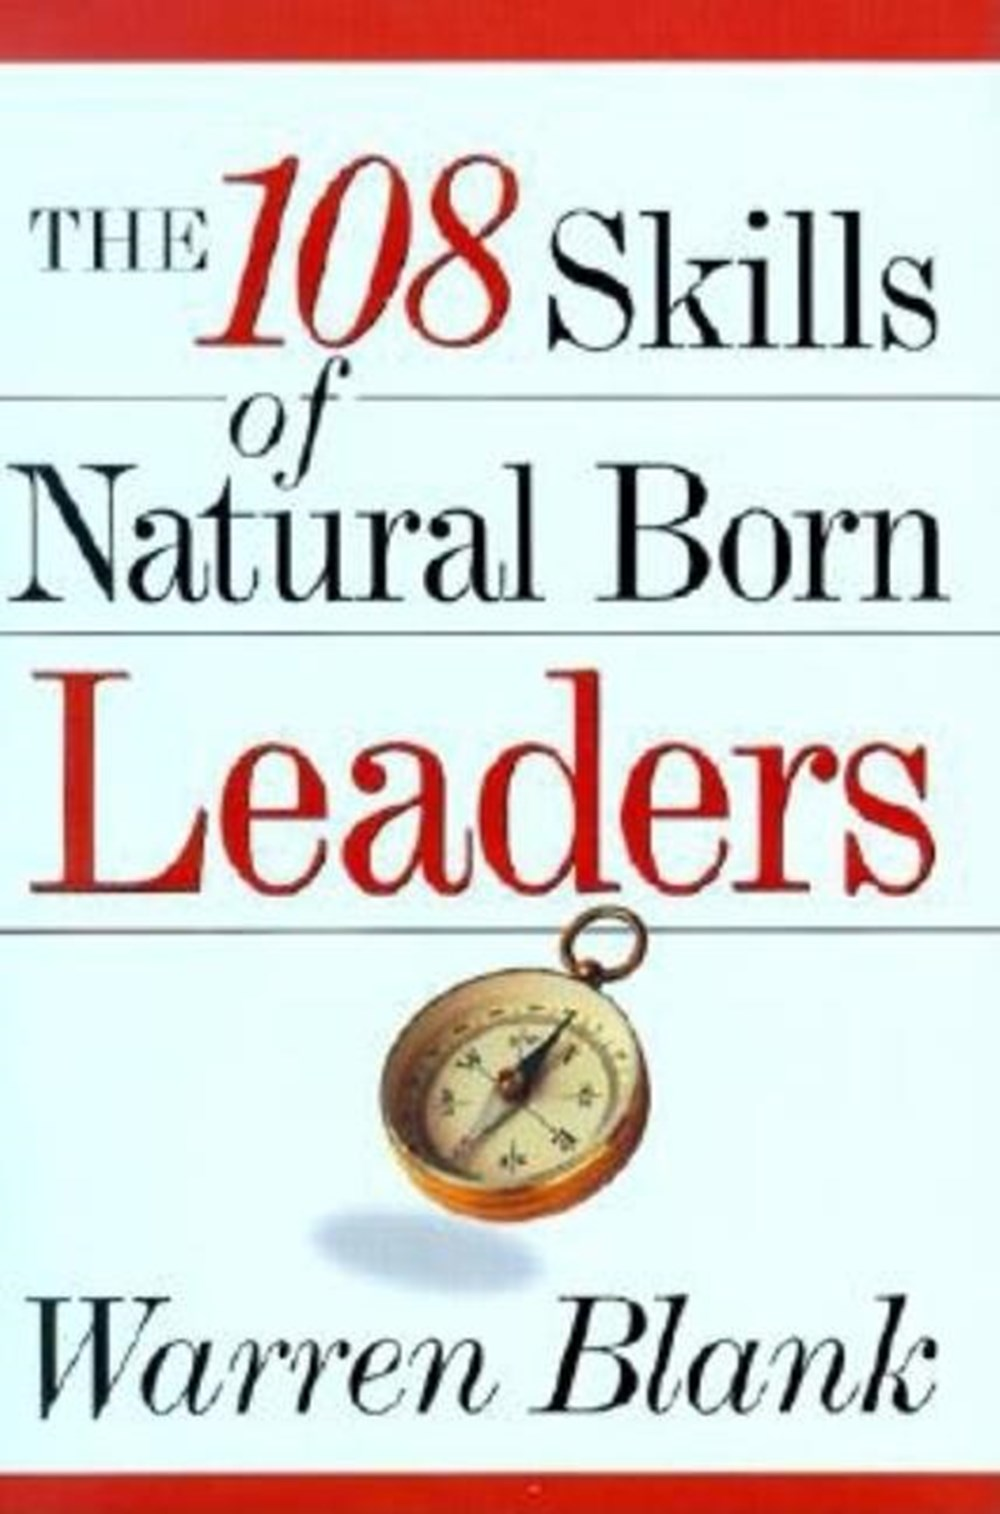 108 Skills of Natural Born Leaders